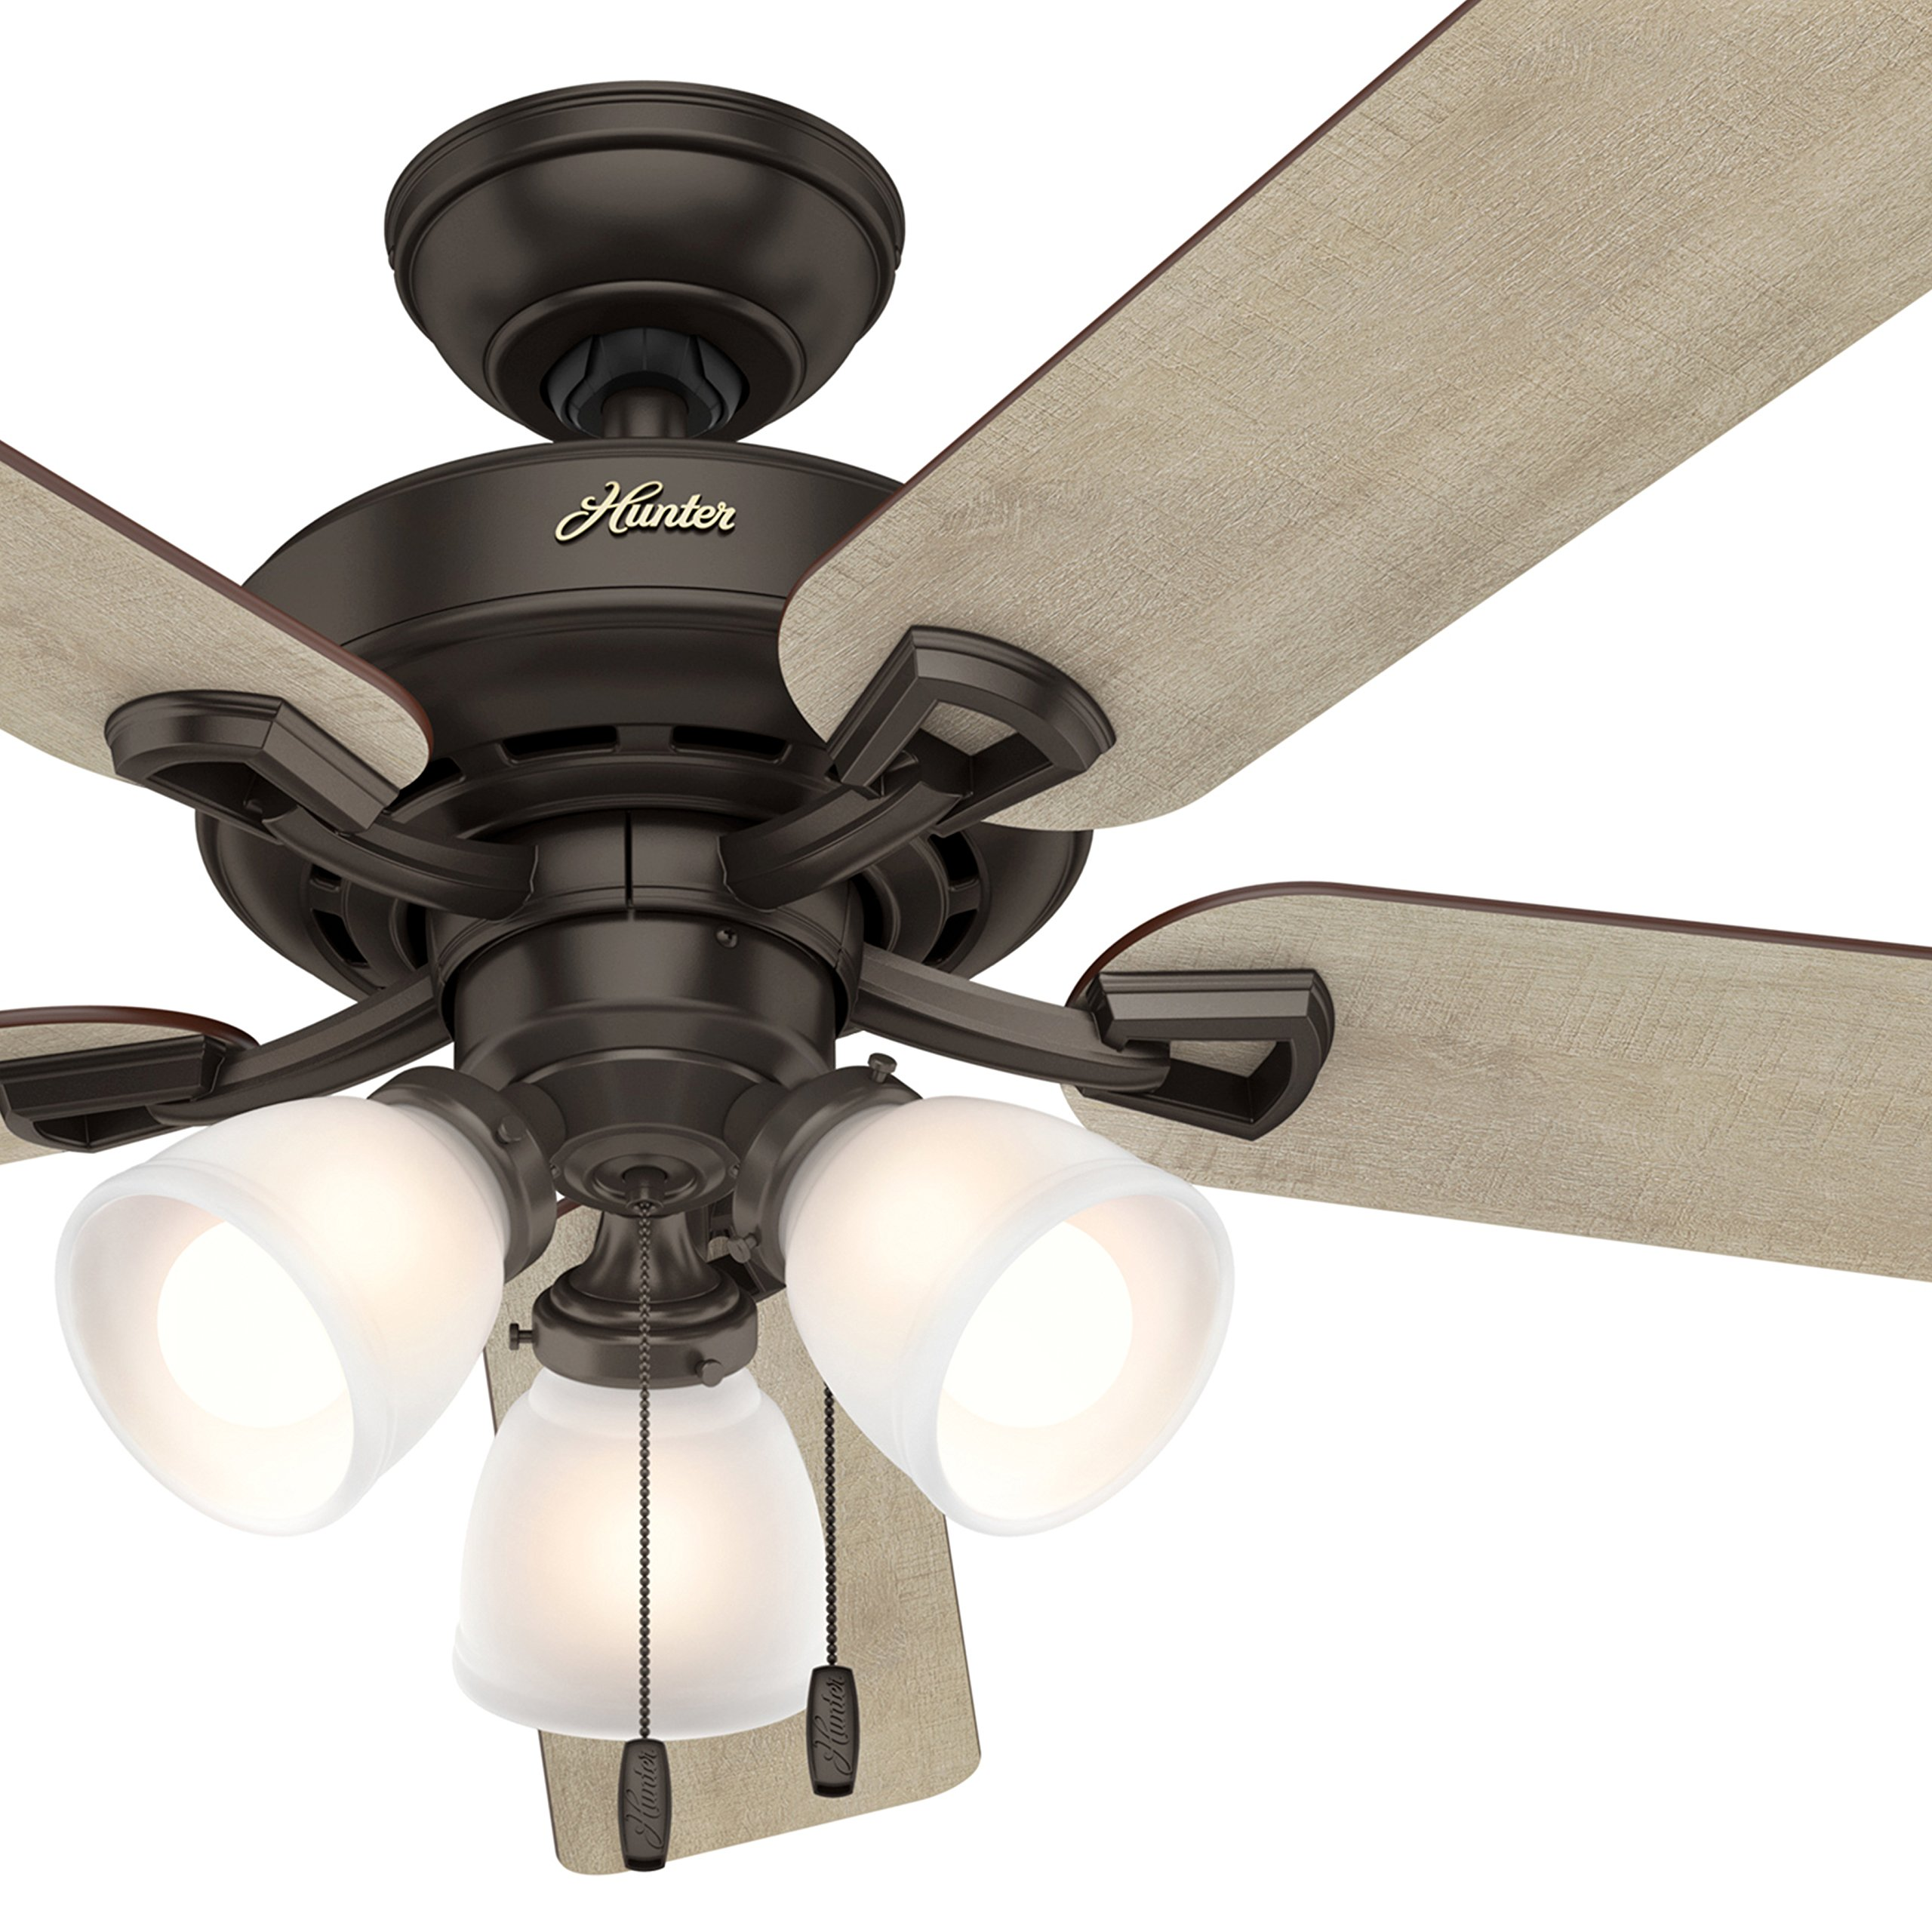 Hunter Fan 52'' LED Ceiling Fan with 3 Lights in Premier Bronze, 5-Blade (Certified Refurbished)